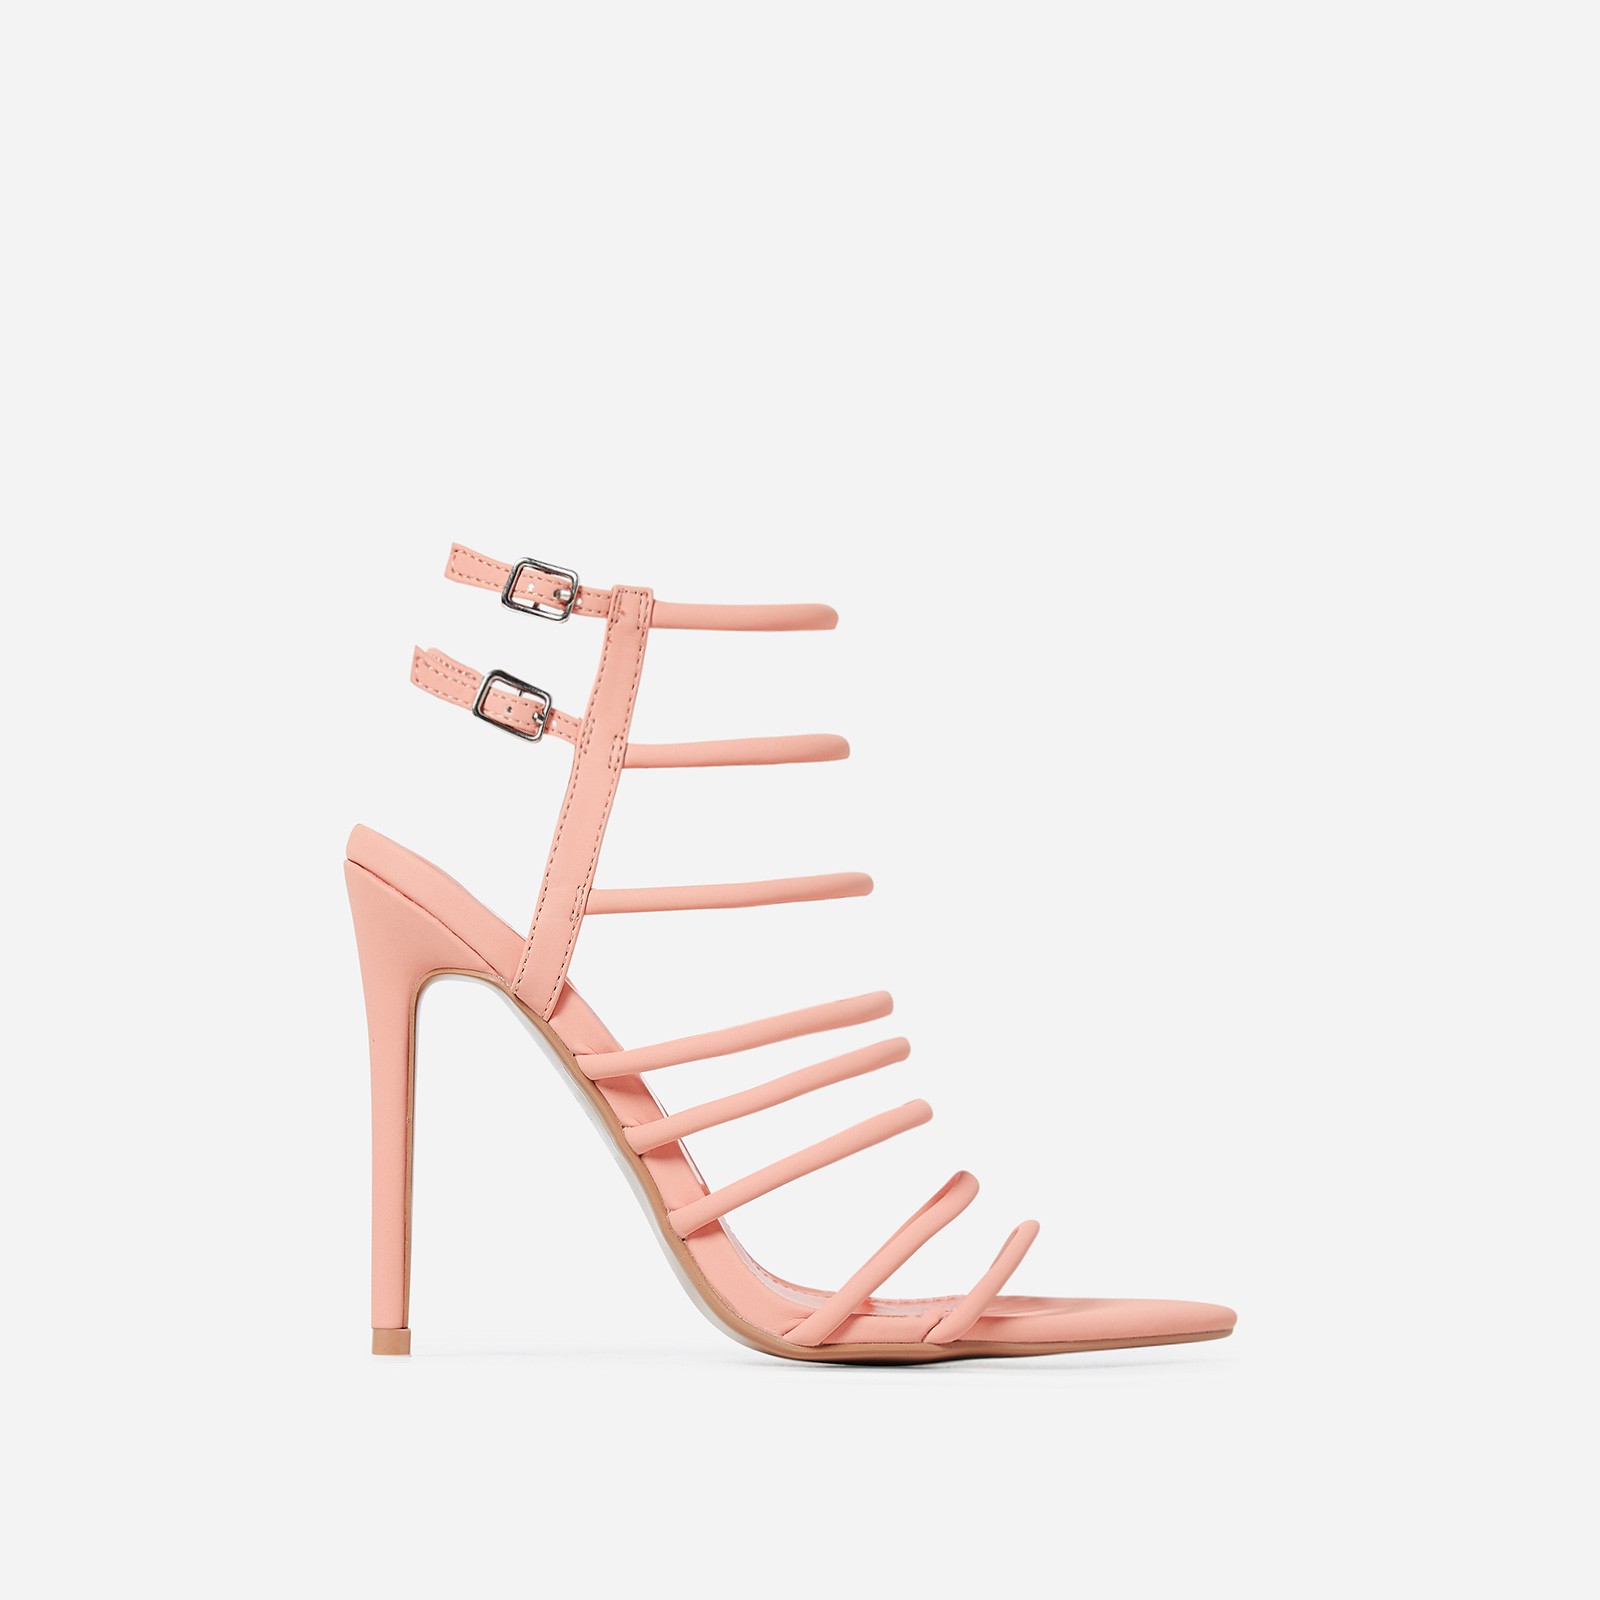 Endless Lace Up Heel In Orange Faux Leather